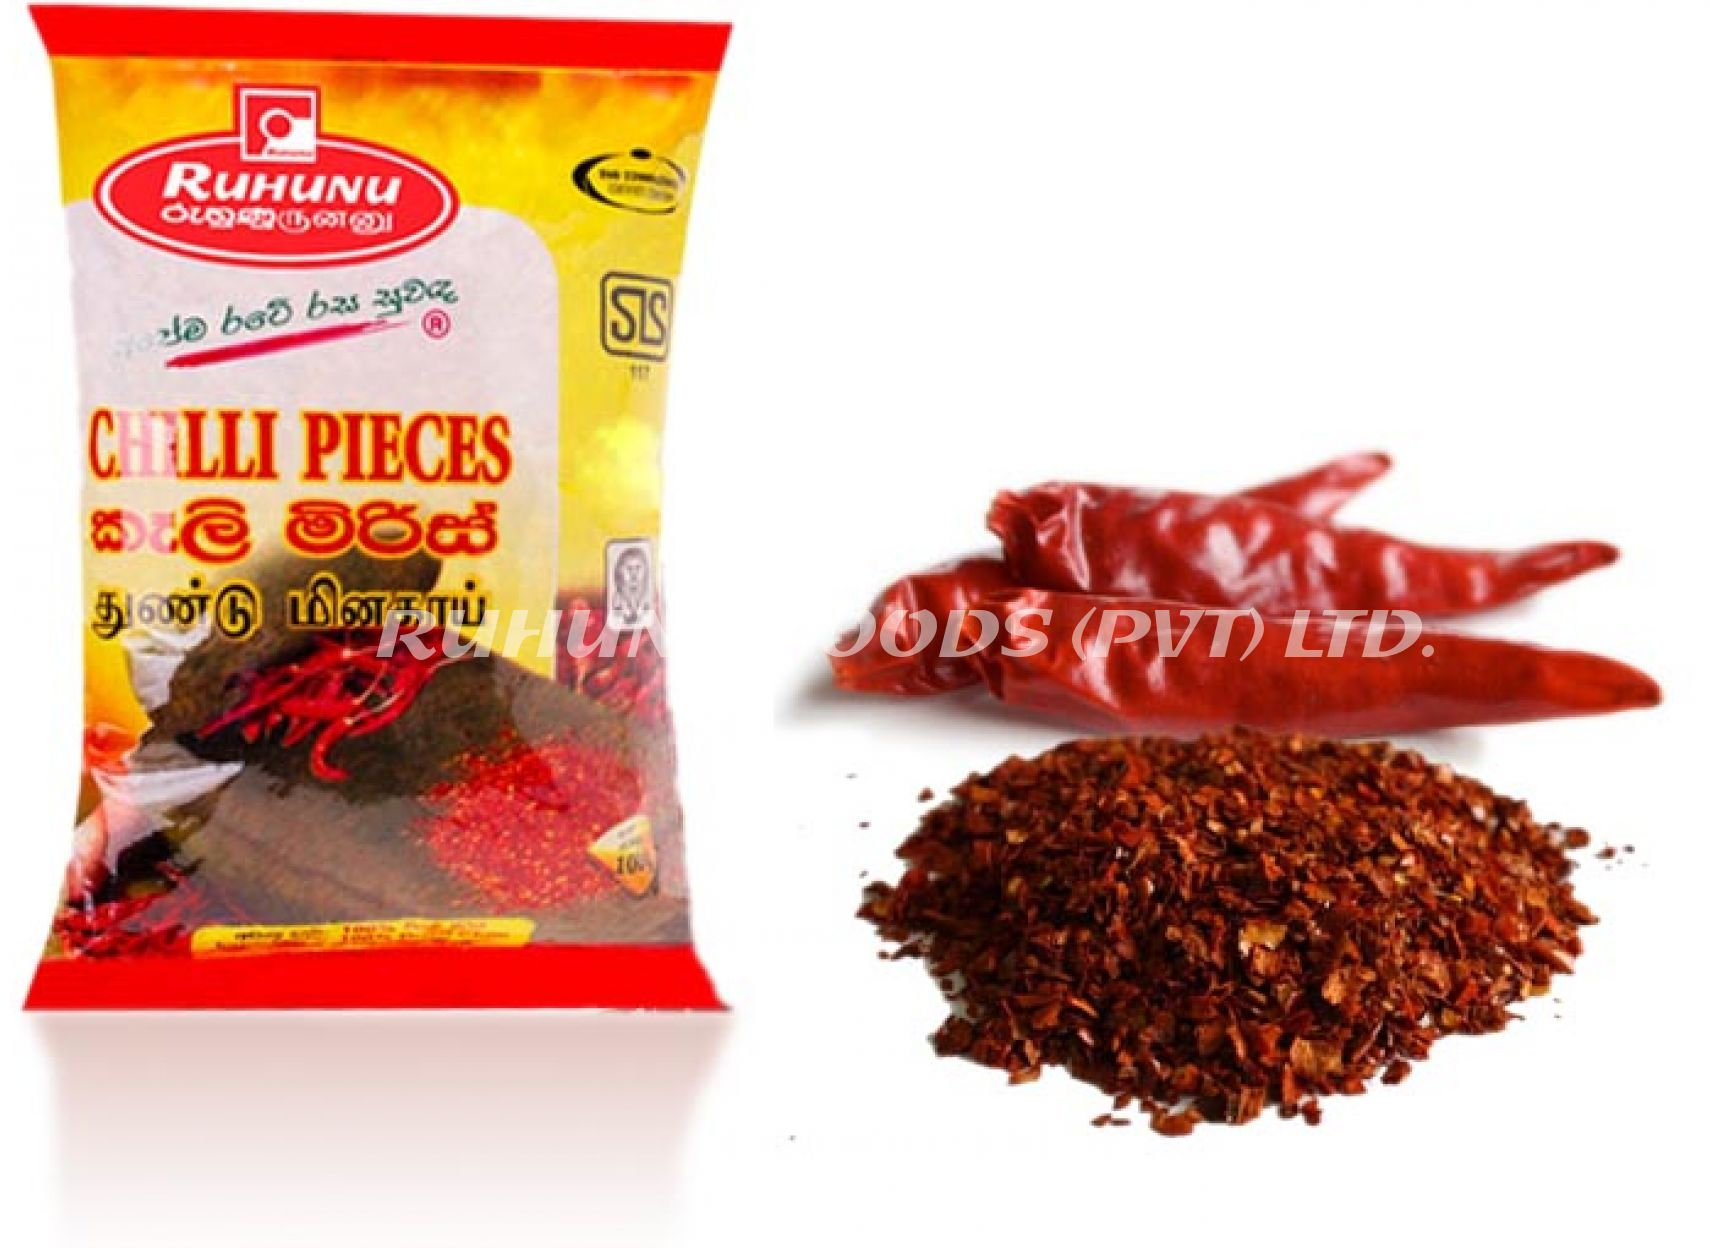 Ruhunu Chilli Pieces